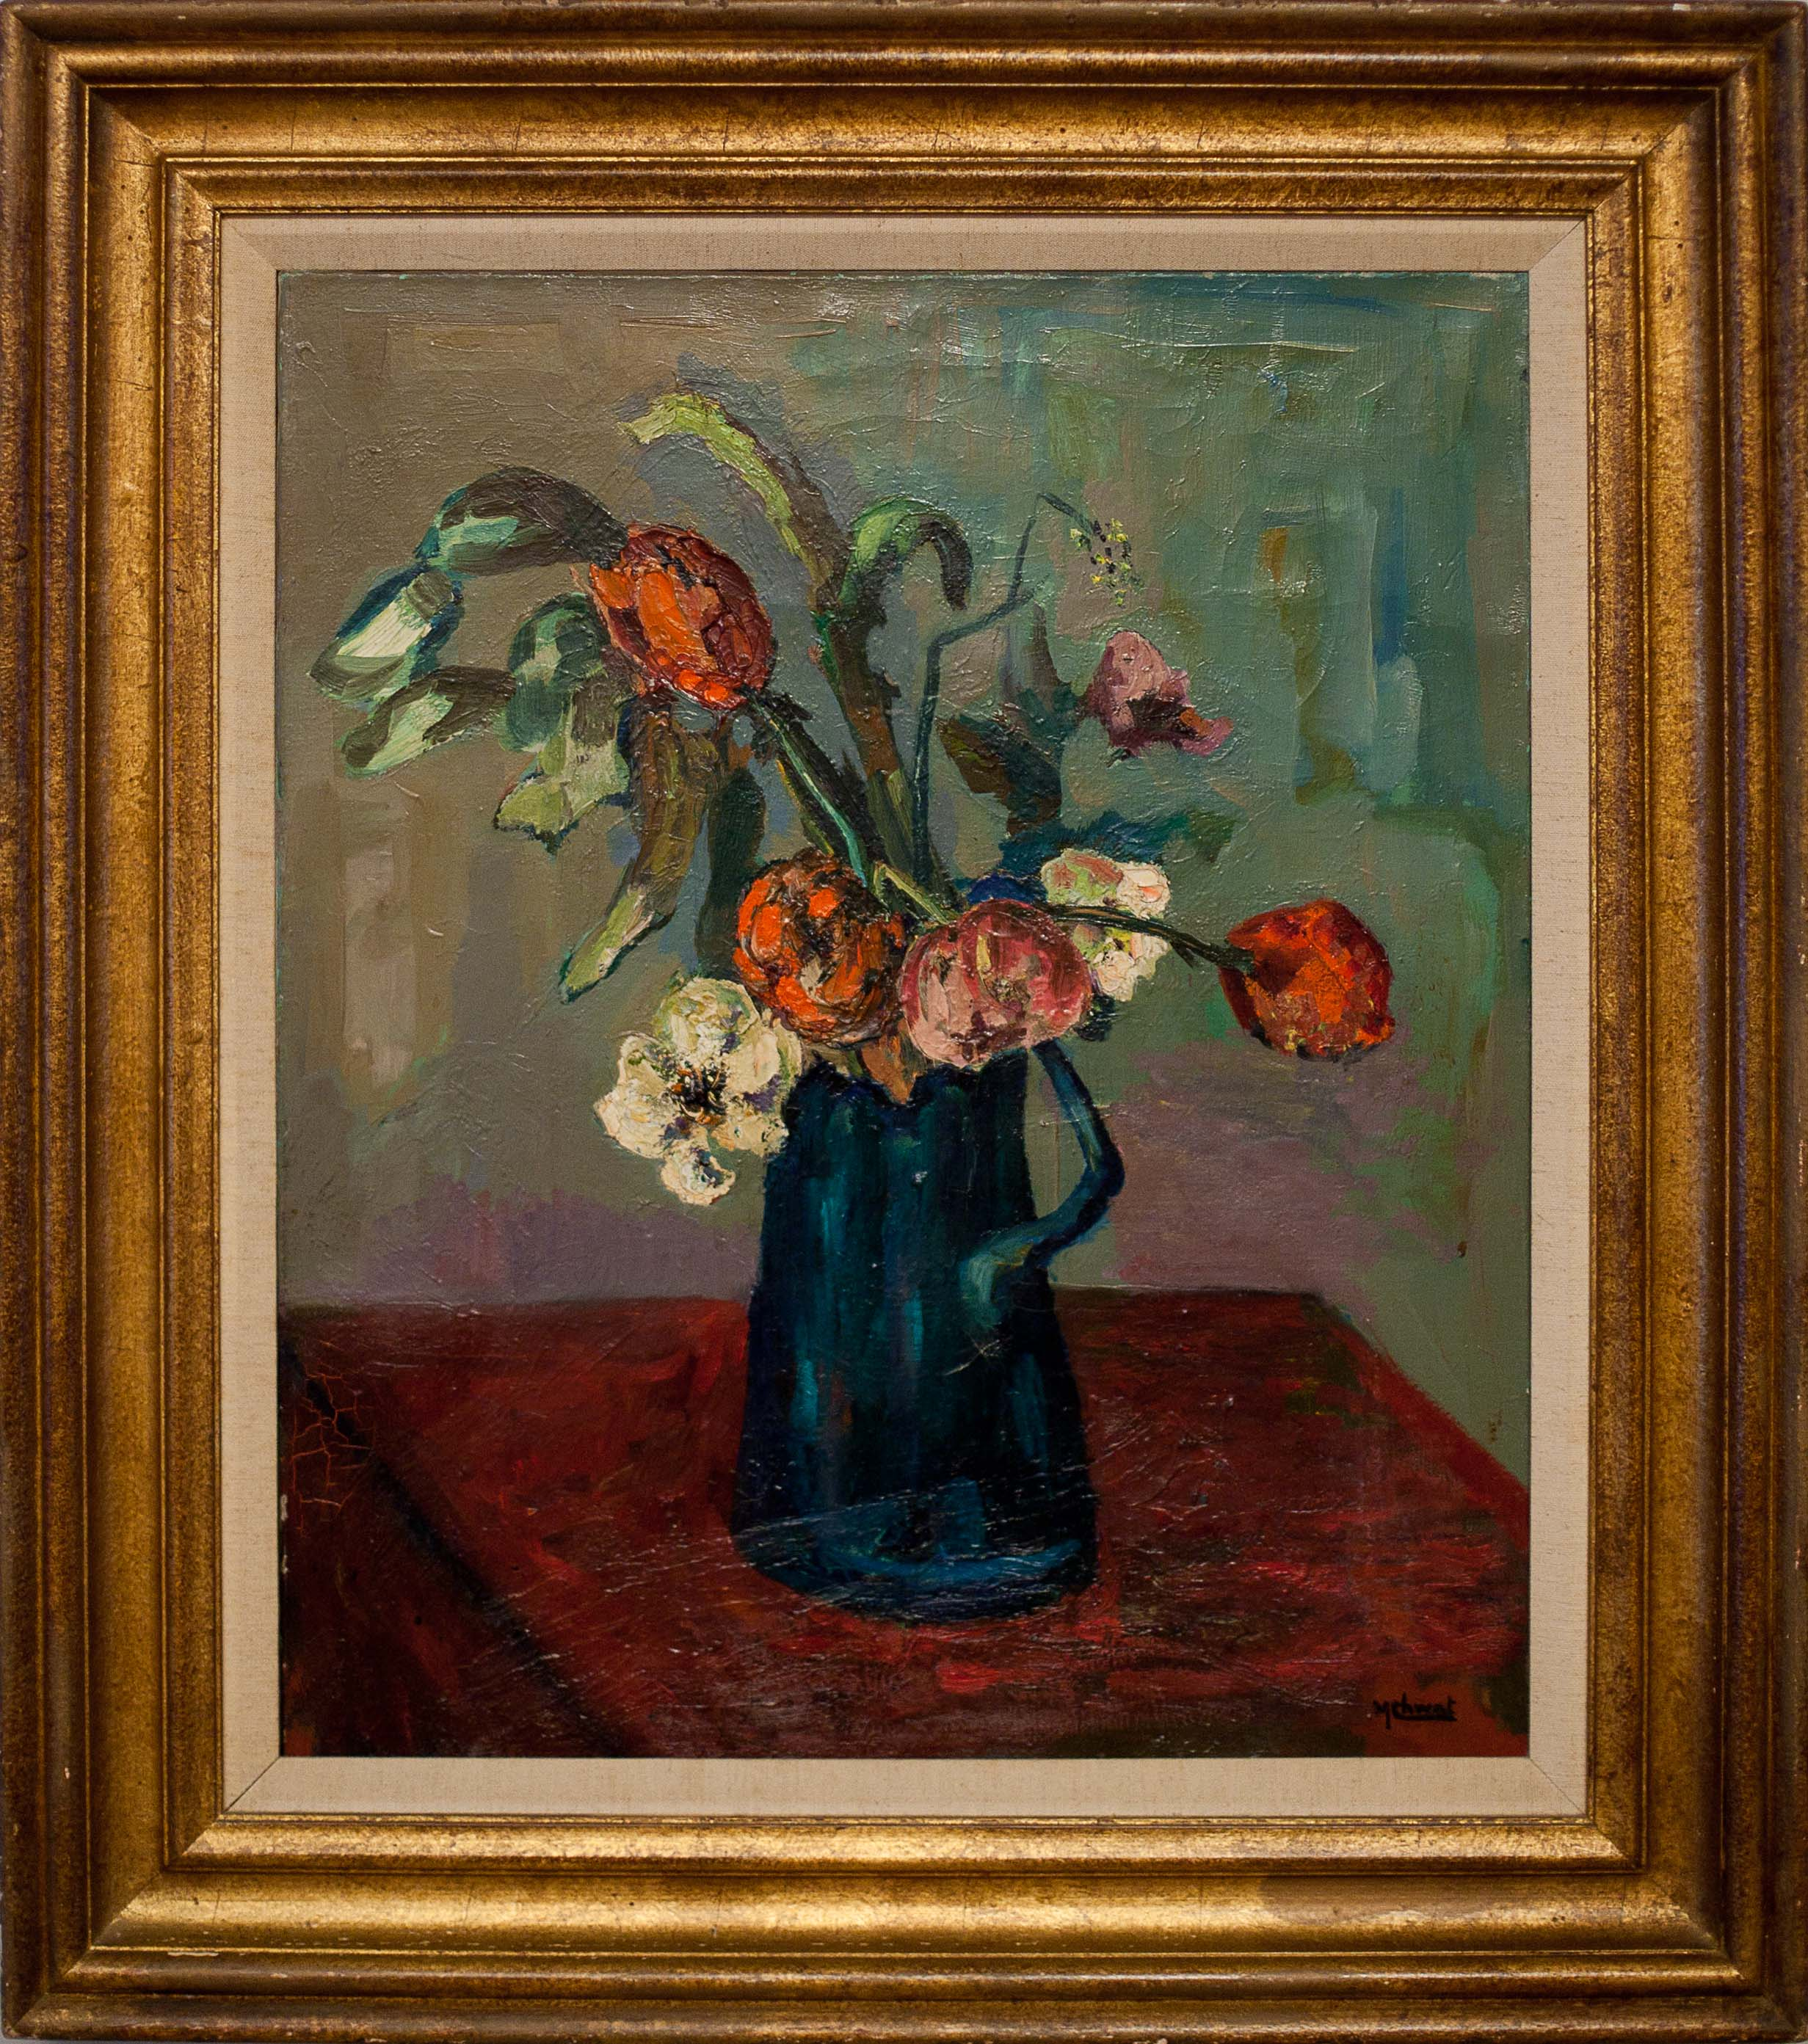 Tulips by Morris Chwat. oil on canvas. 23.0 in x 19.0 in. 1956